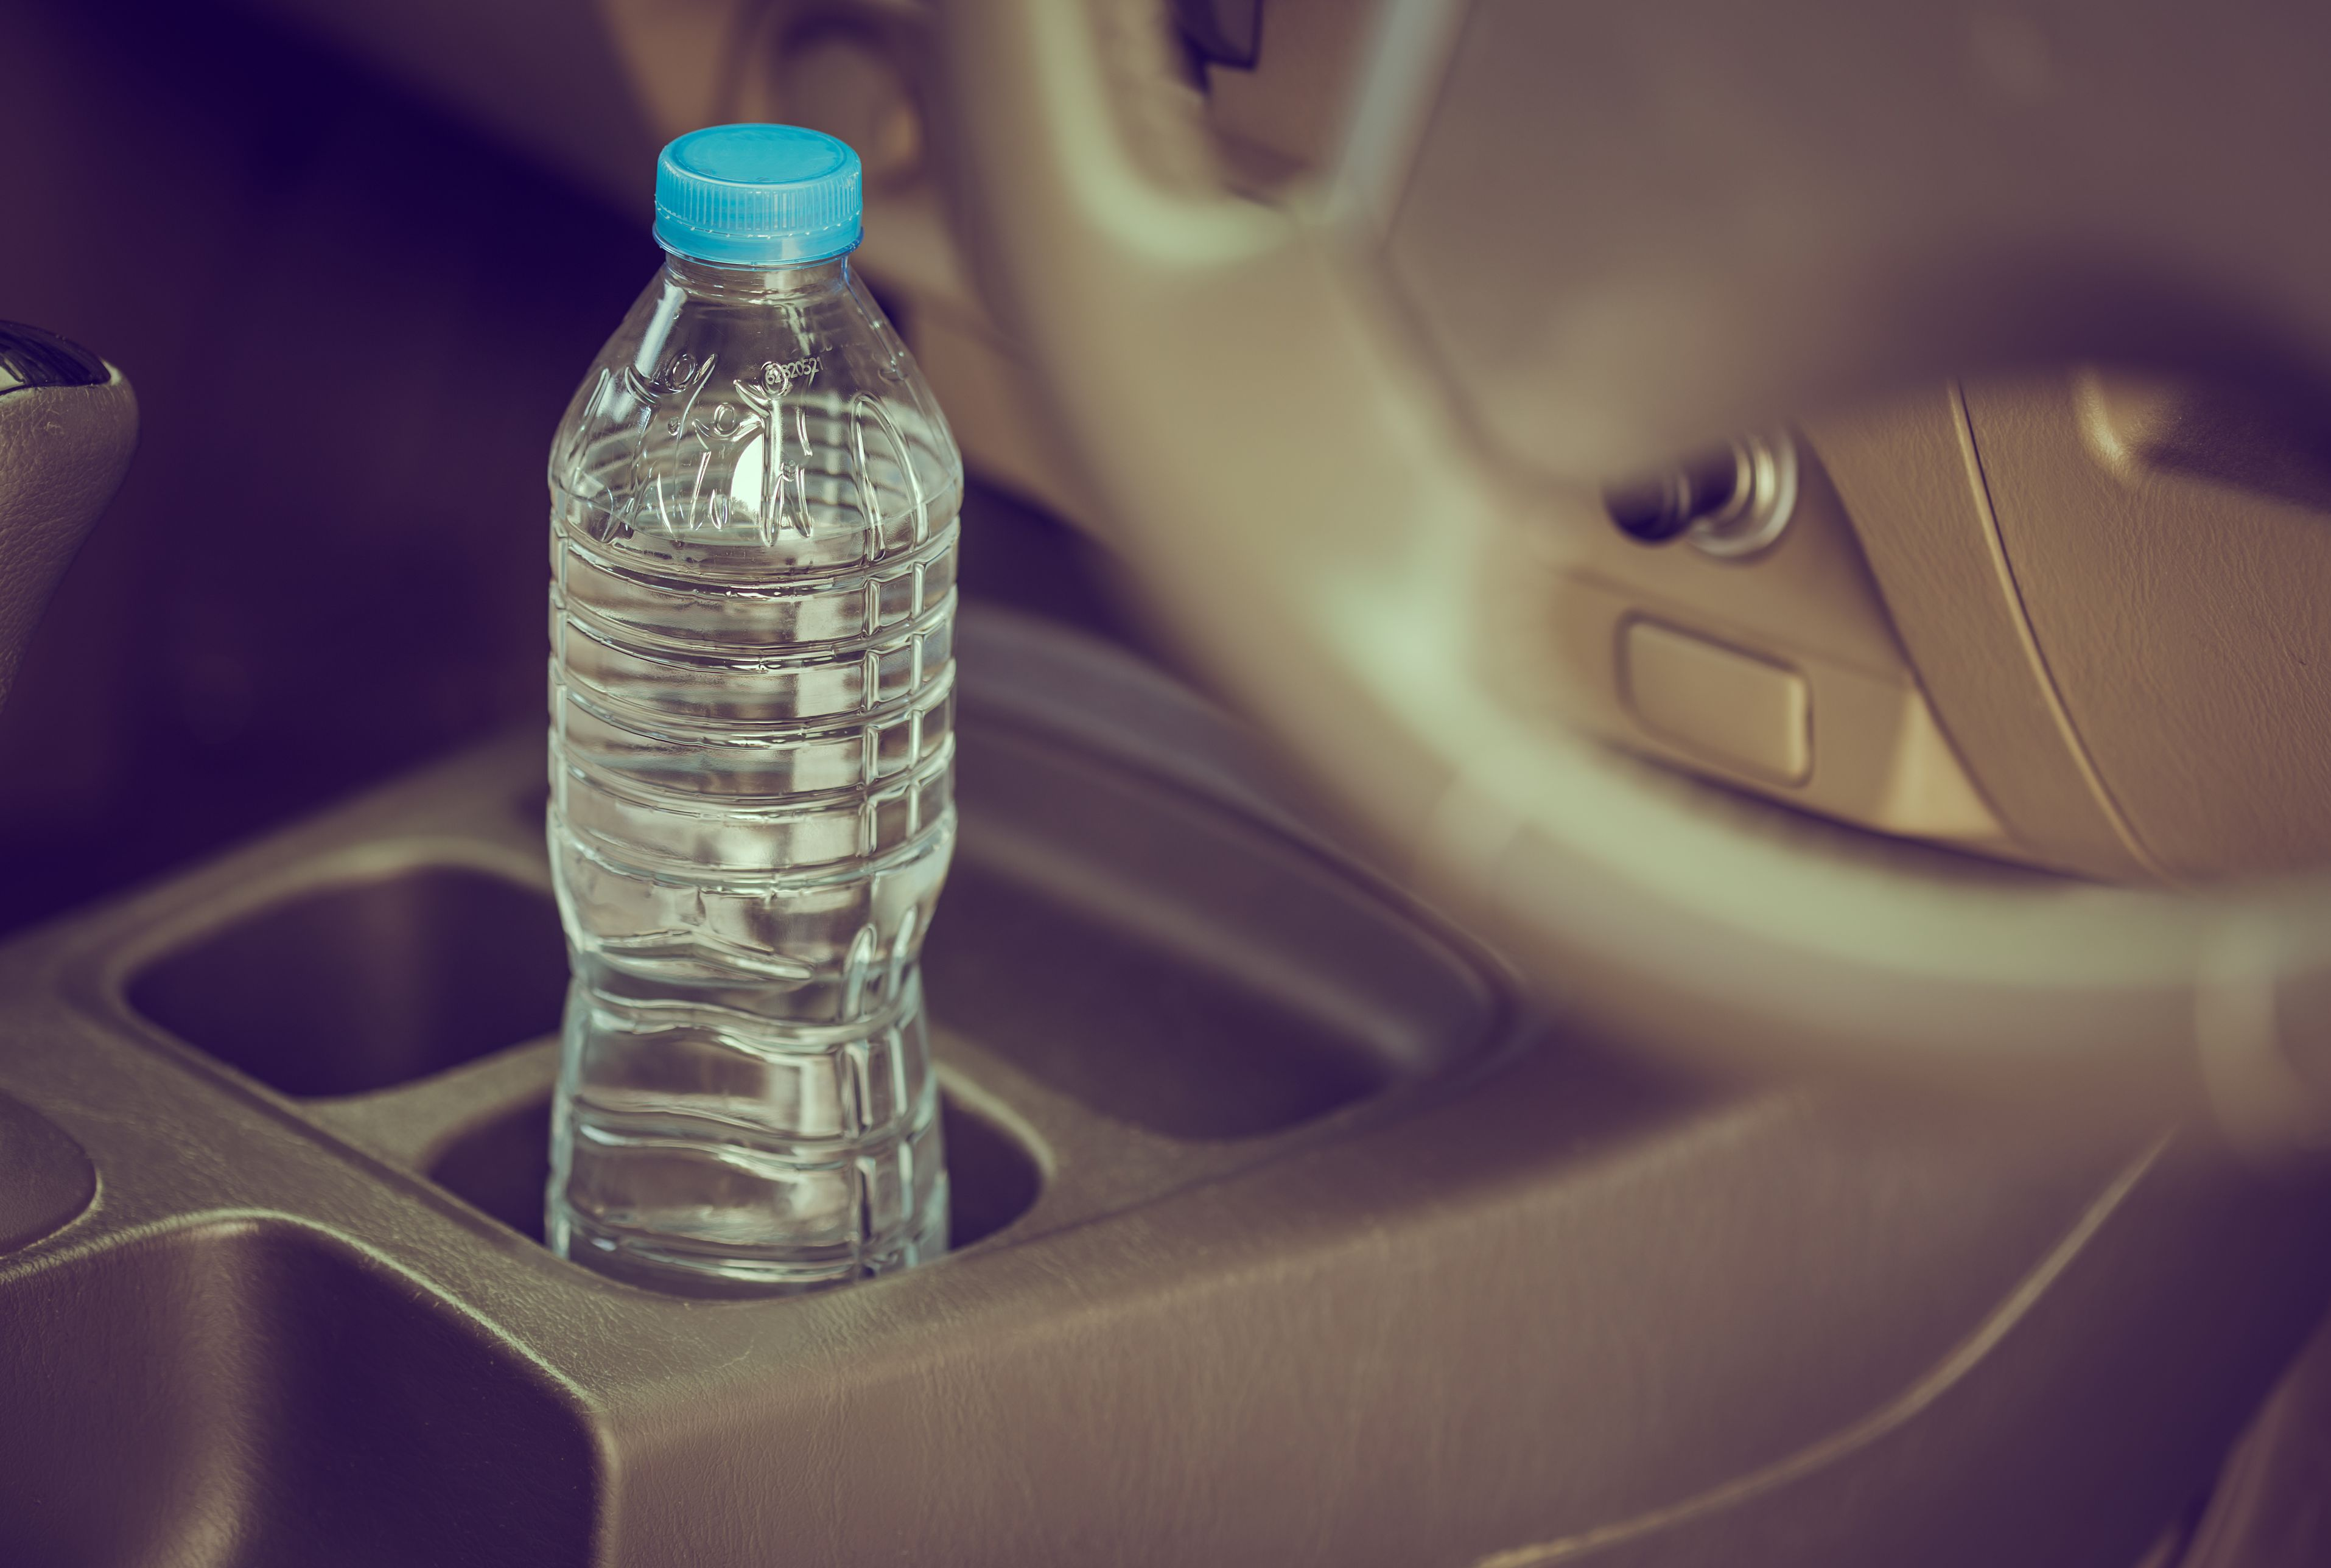 Why You Should Never Leave Bottles of Water in Your Hot Car